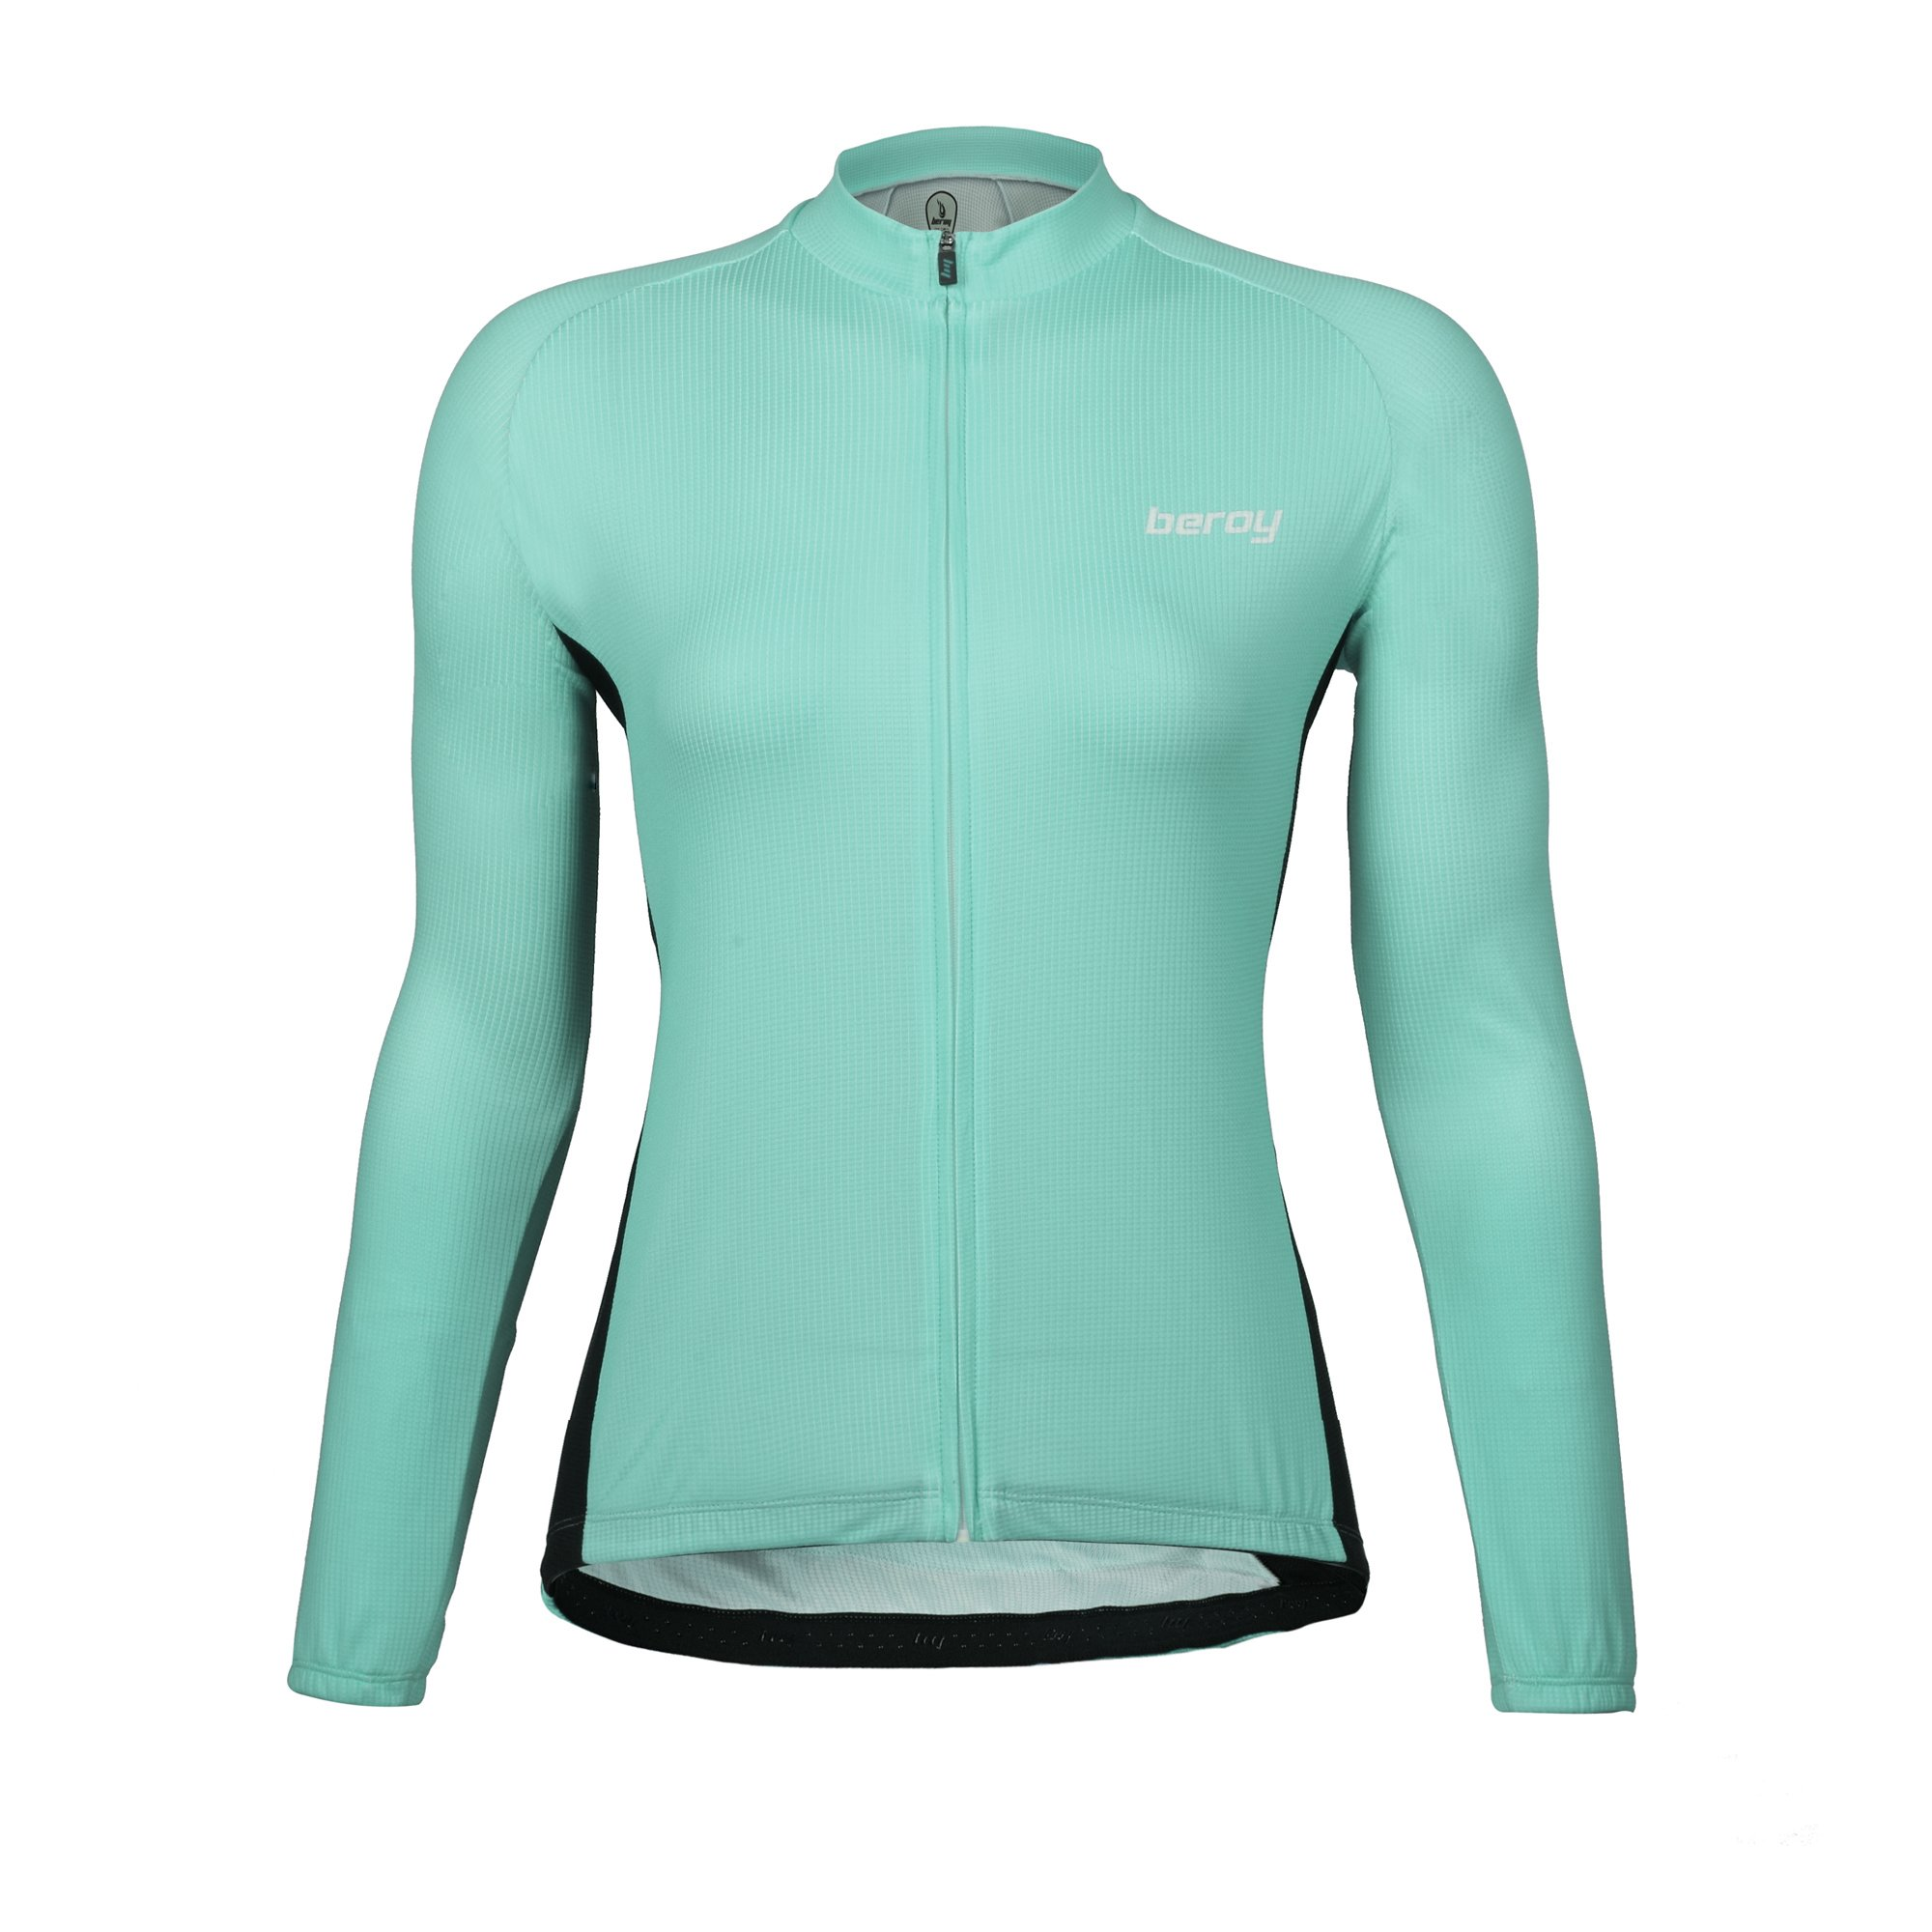 Beory Womens Cycling Jerseys with Short Sleeves,Girls Bike Short Sleeves with Three Pockets(XXL Green) by beroy